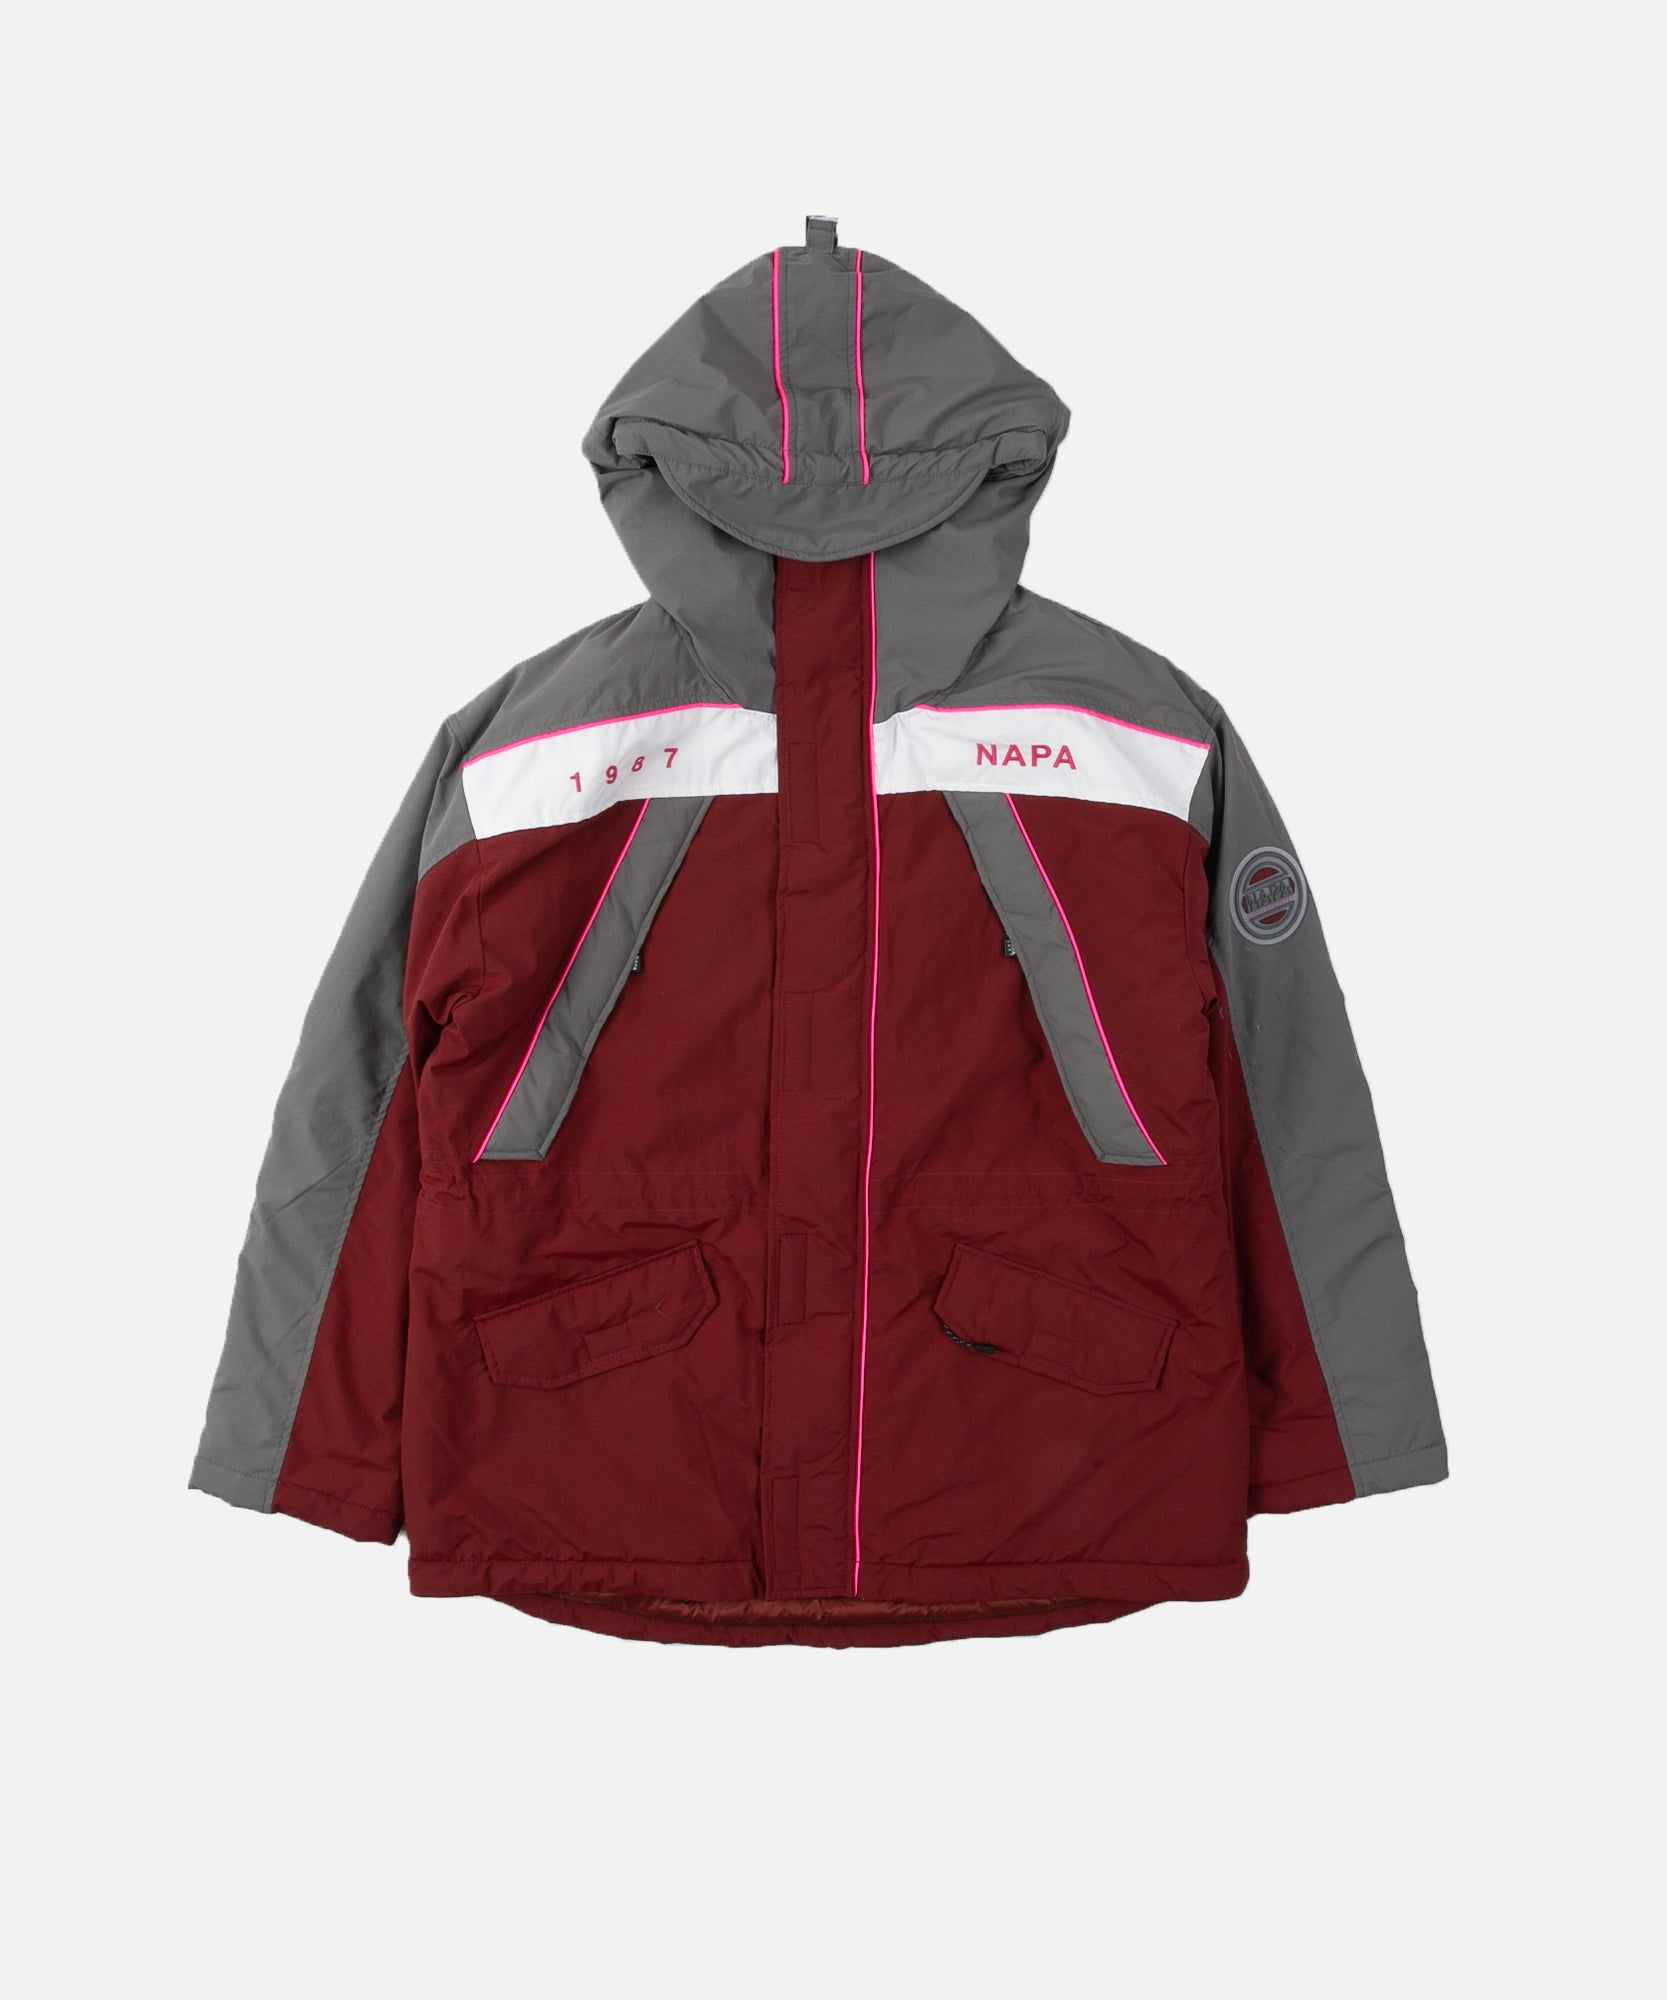 Napapijri x Martine Rose EPOCH 2 Jacket (Red Ruby)